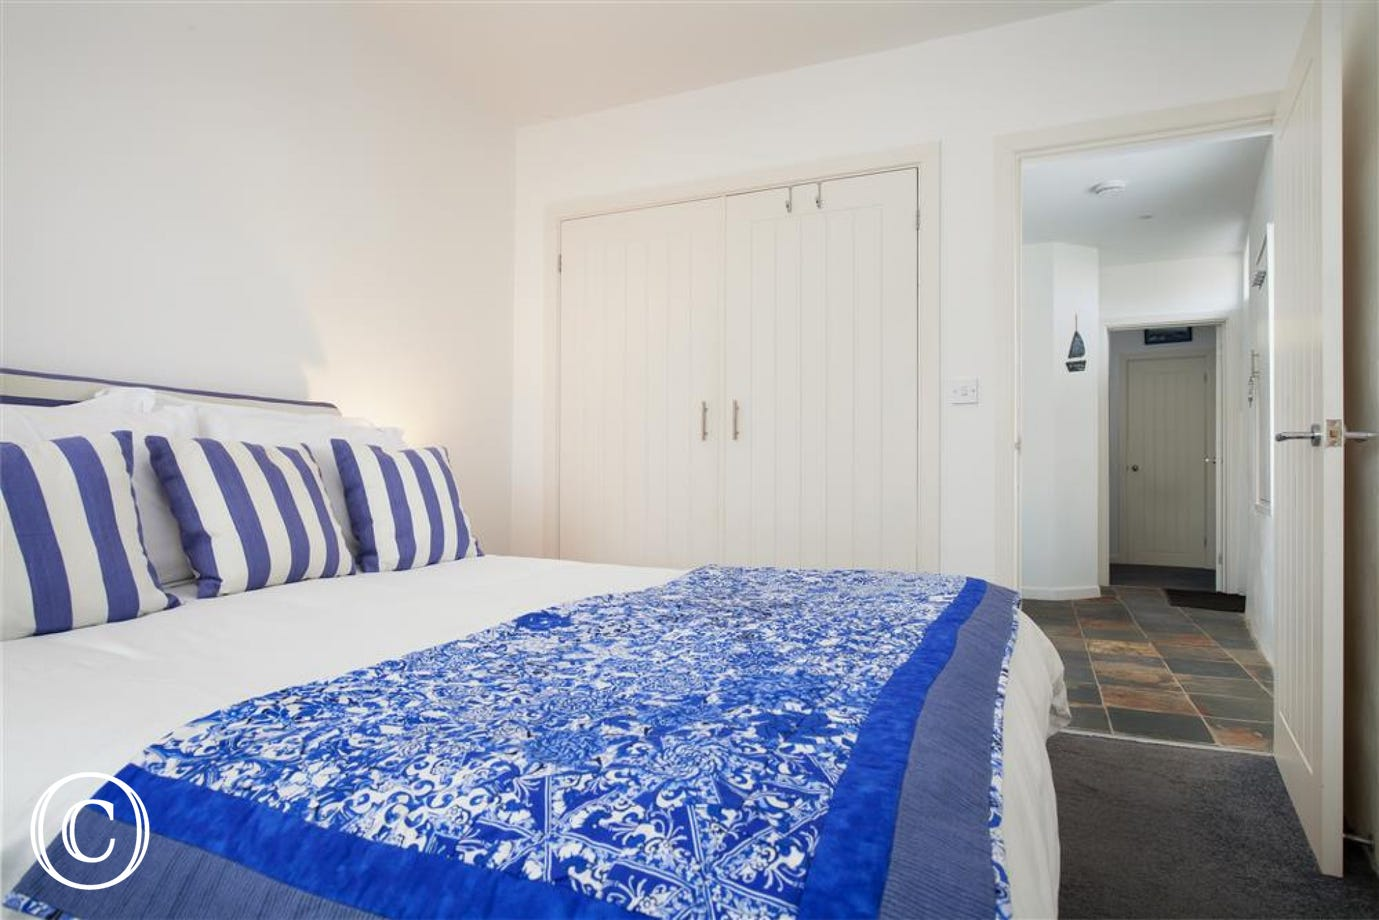 Oyster Cottage, Shaldon - Master bedroom (view 2)